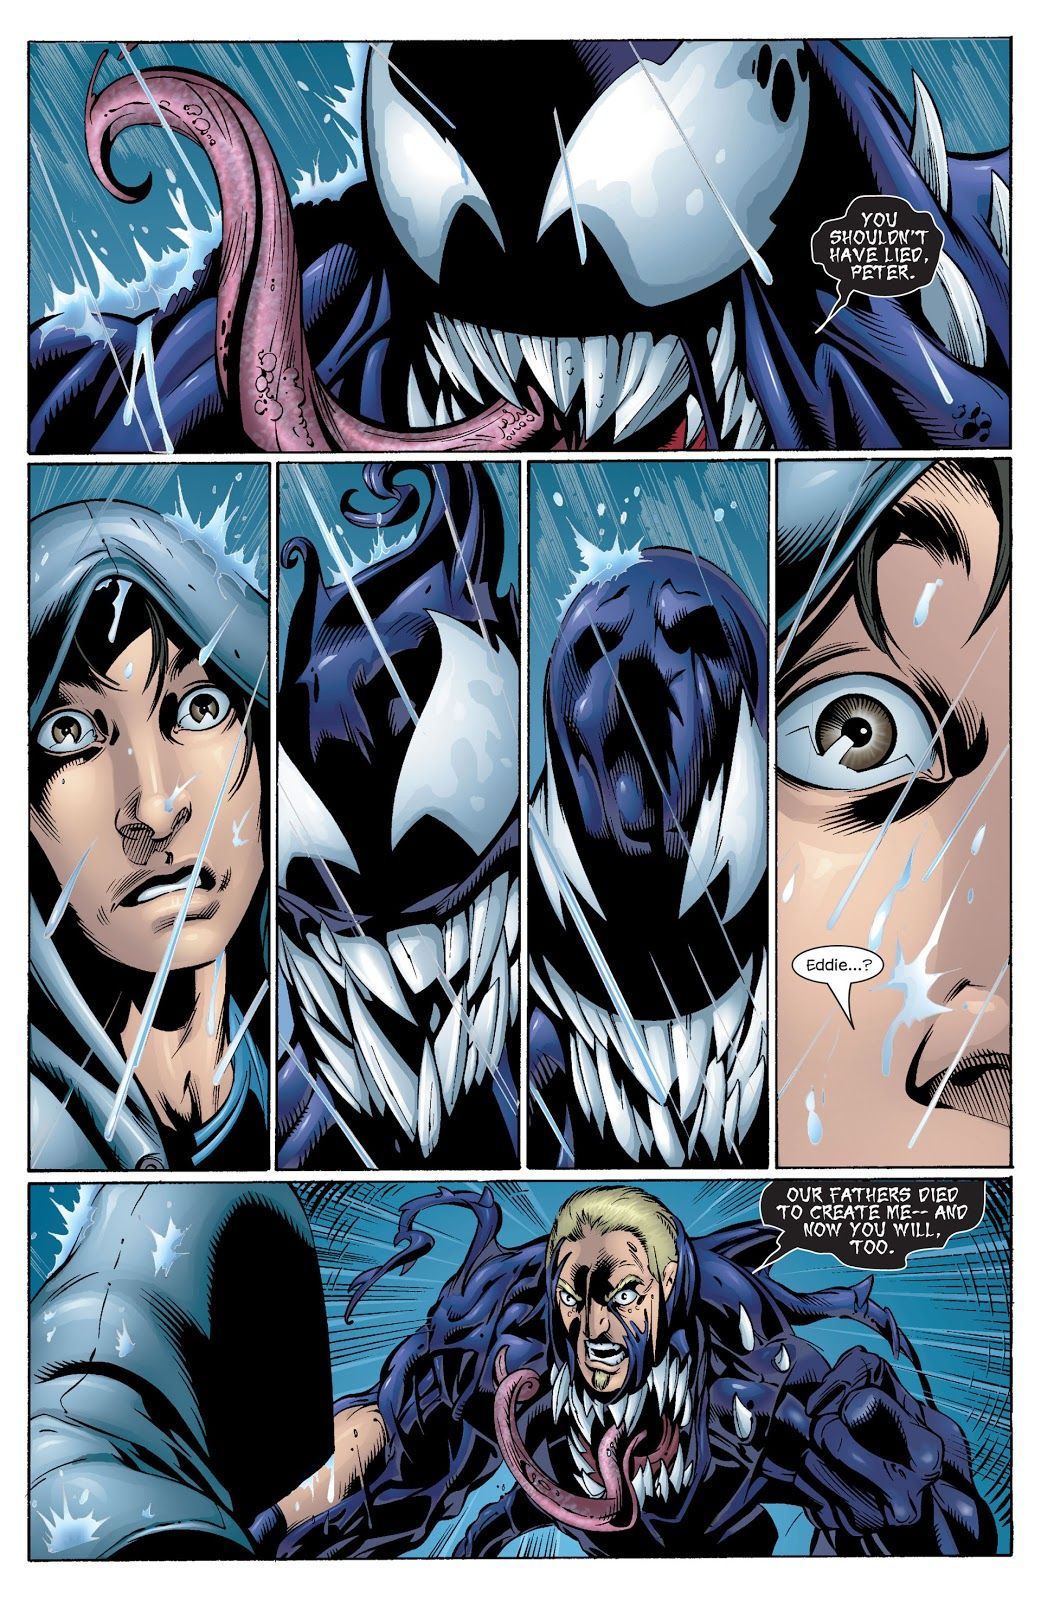 Ultimate Spider Man 2000 Issue 37 Read Ultimate Spider Man 2000 Issue 37 Comic Online In High Qual Symbiotes Marvel Ultimate Spiderman Marvel Spiderman